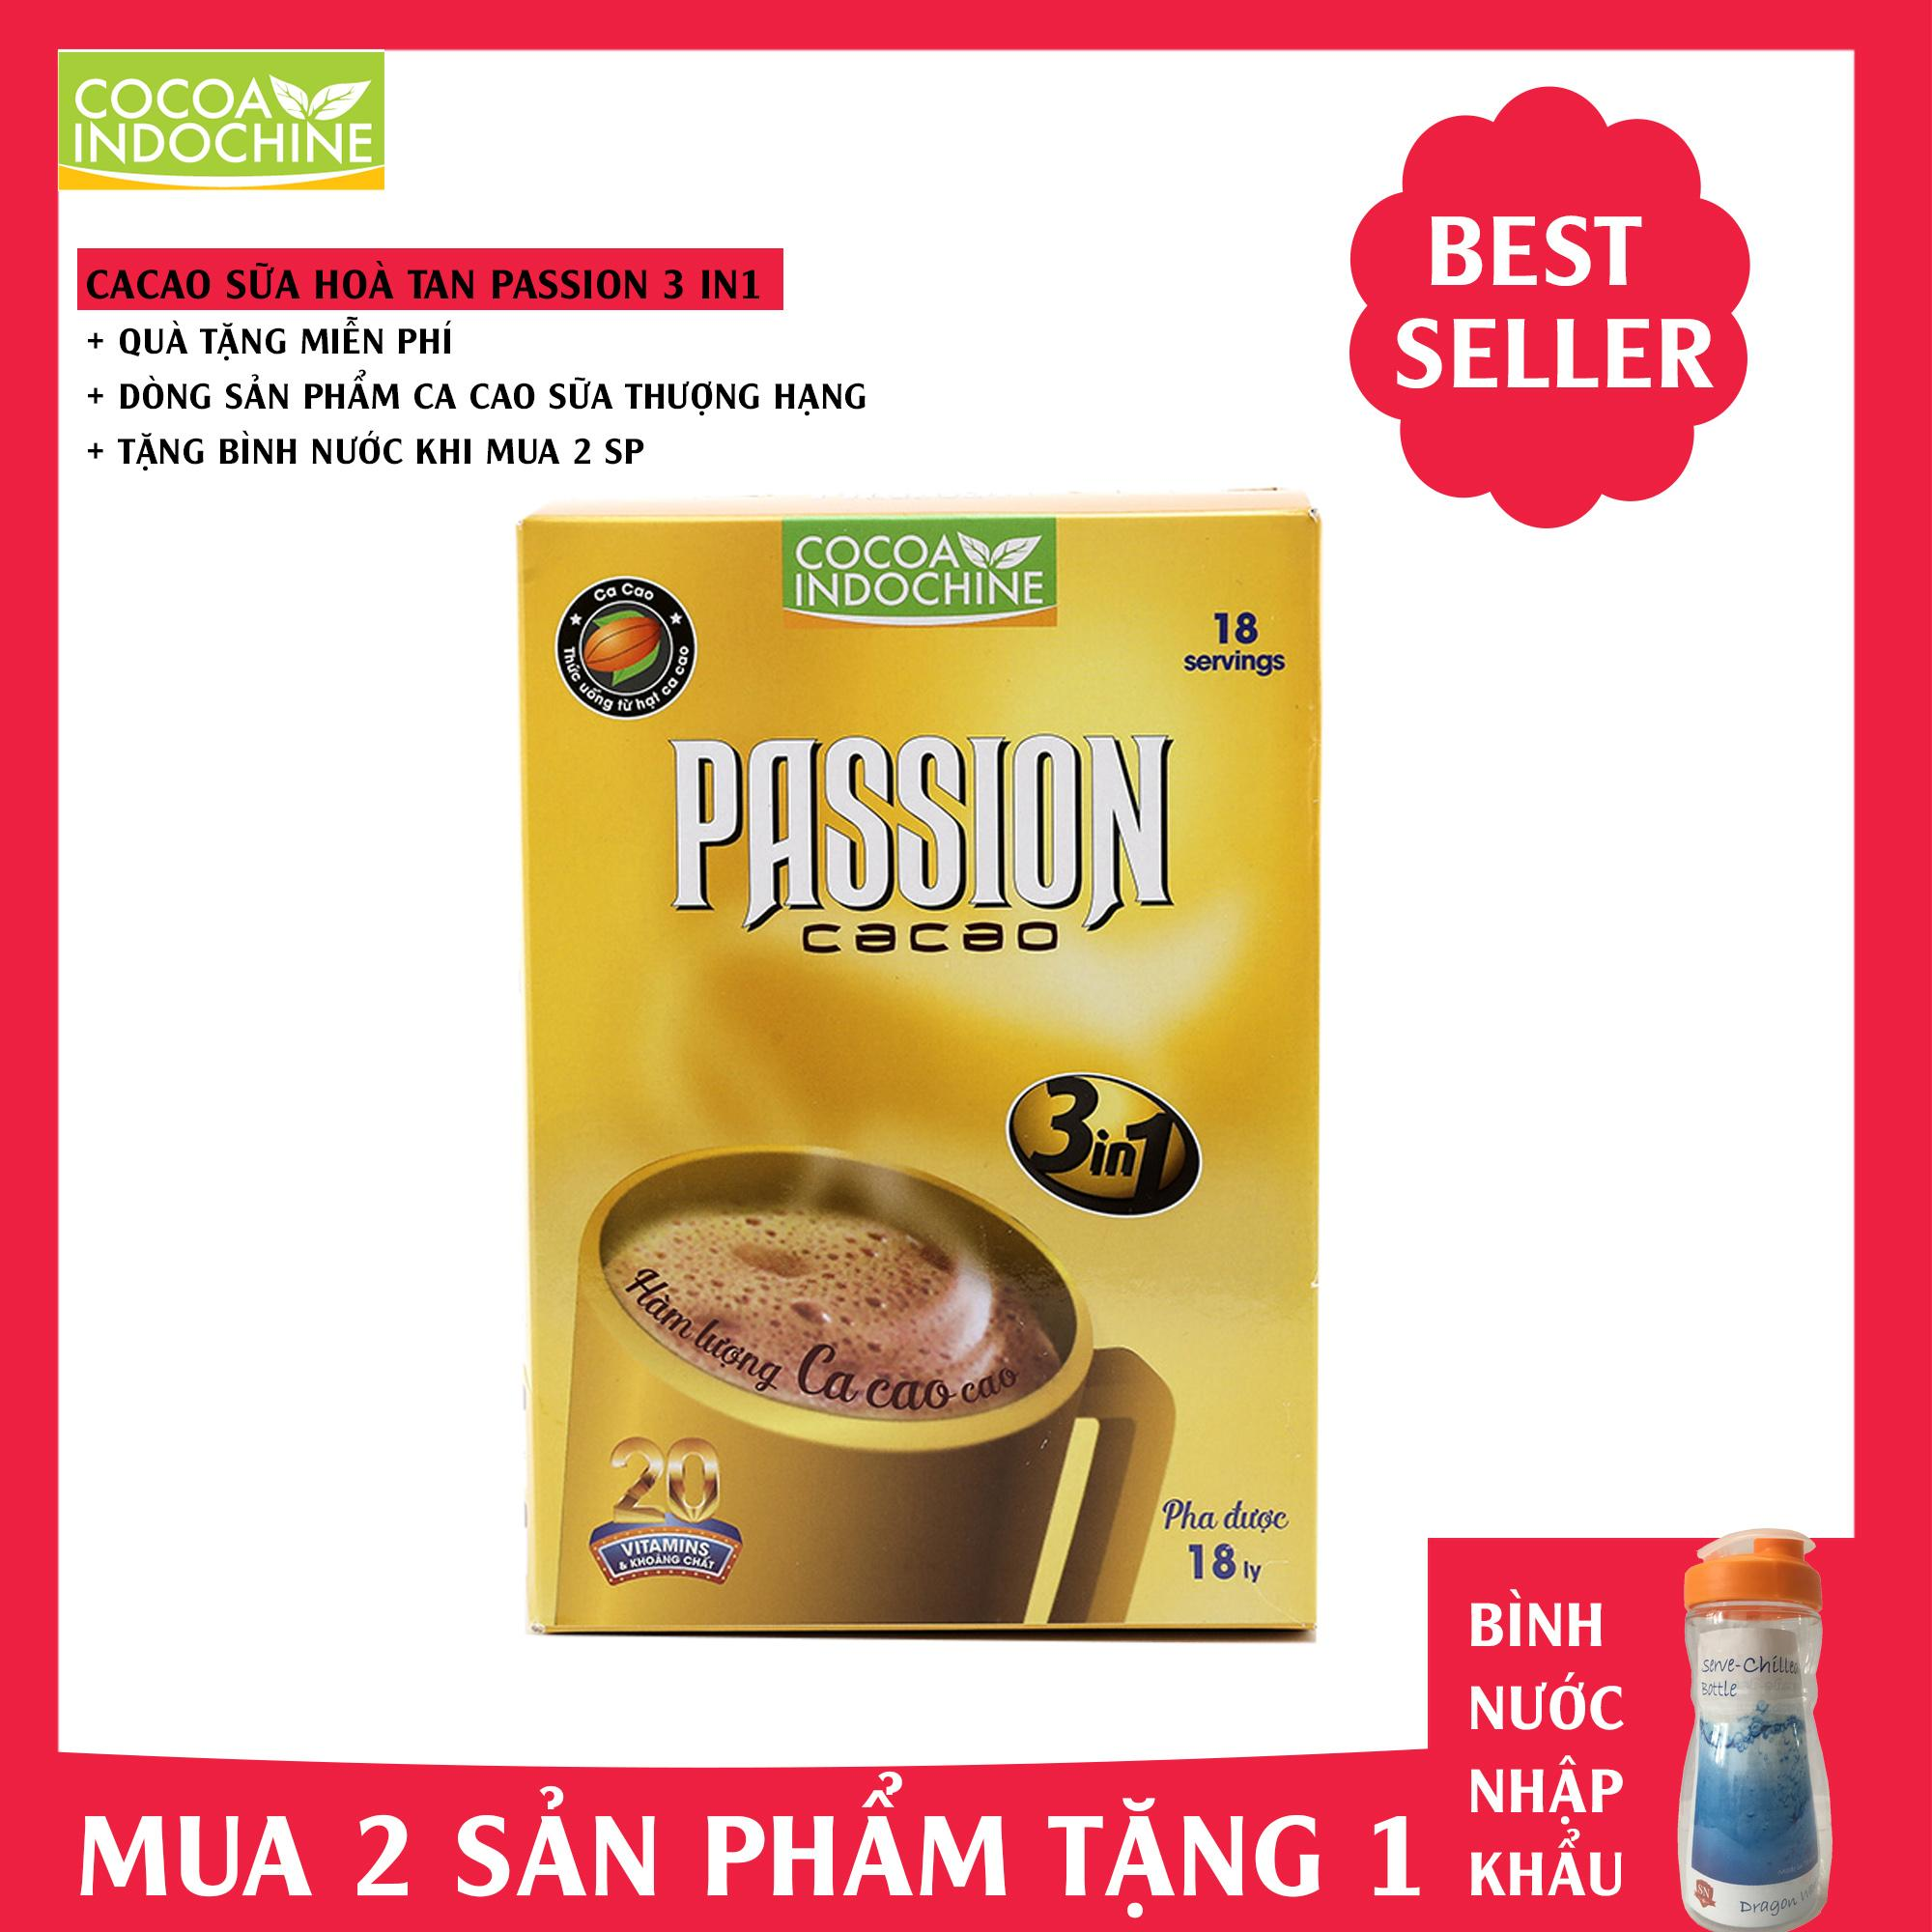 Bột Cacao sữa hoà tan Passion 3 in 1 - Cocoa Indochine